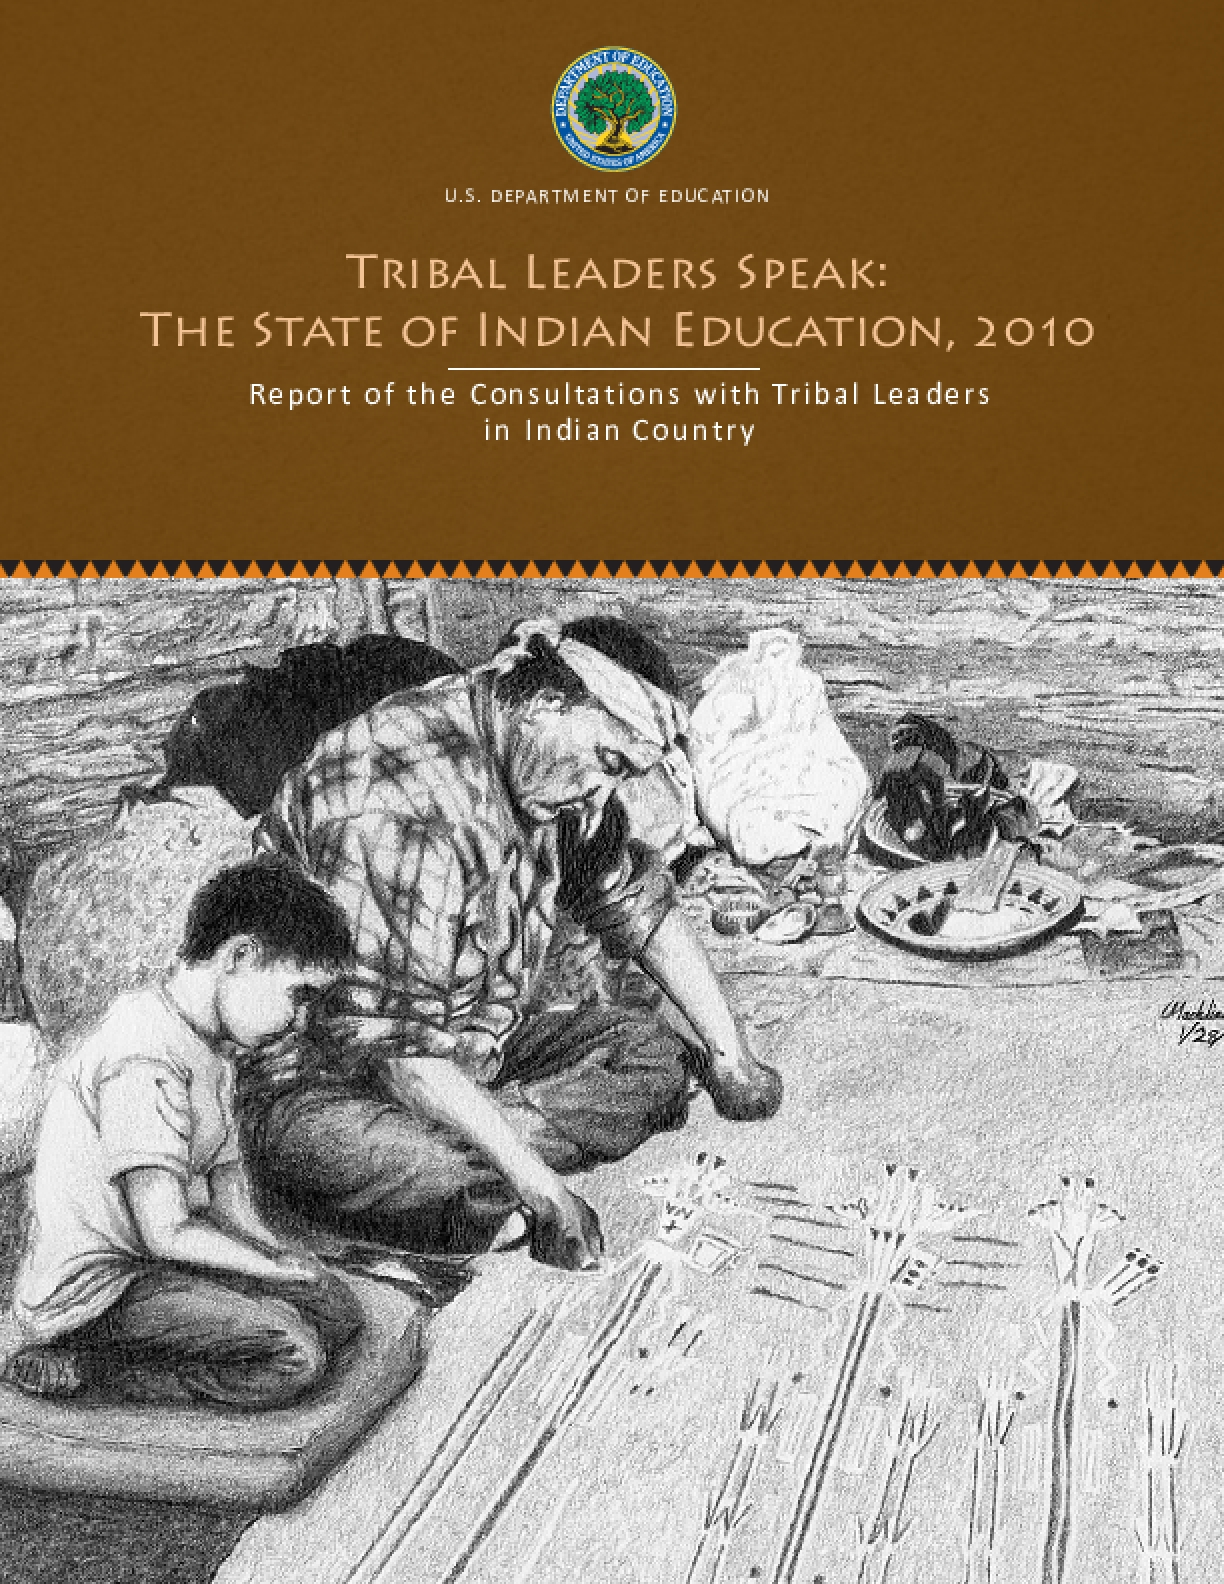 Tribal Leaders Speak: The State of Indian Education, 2010